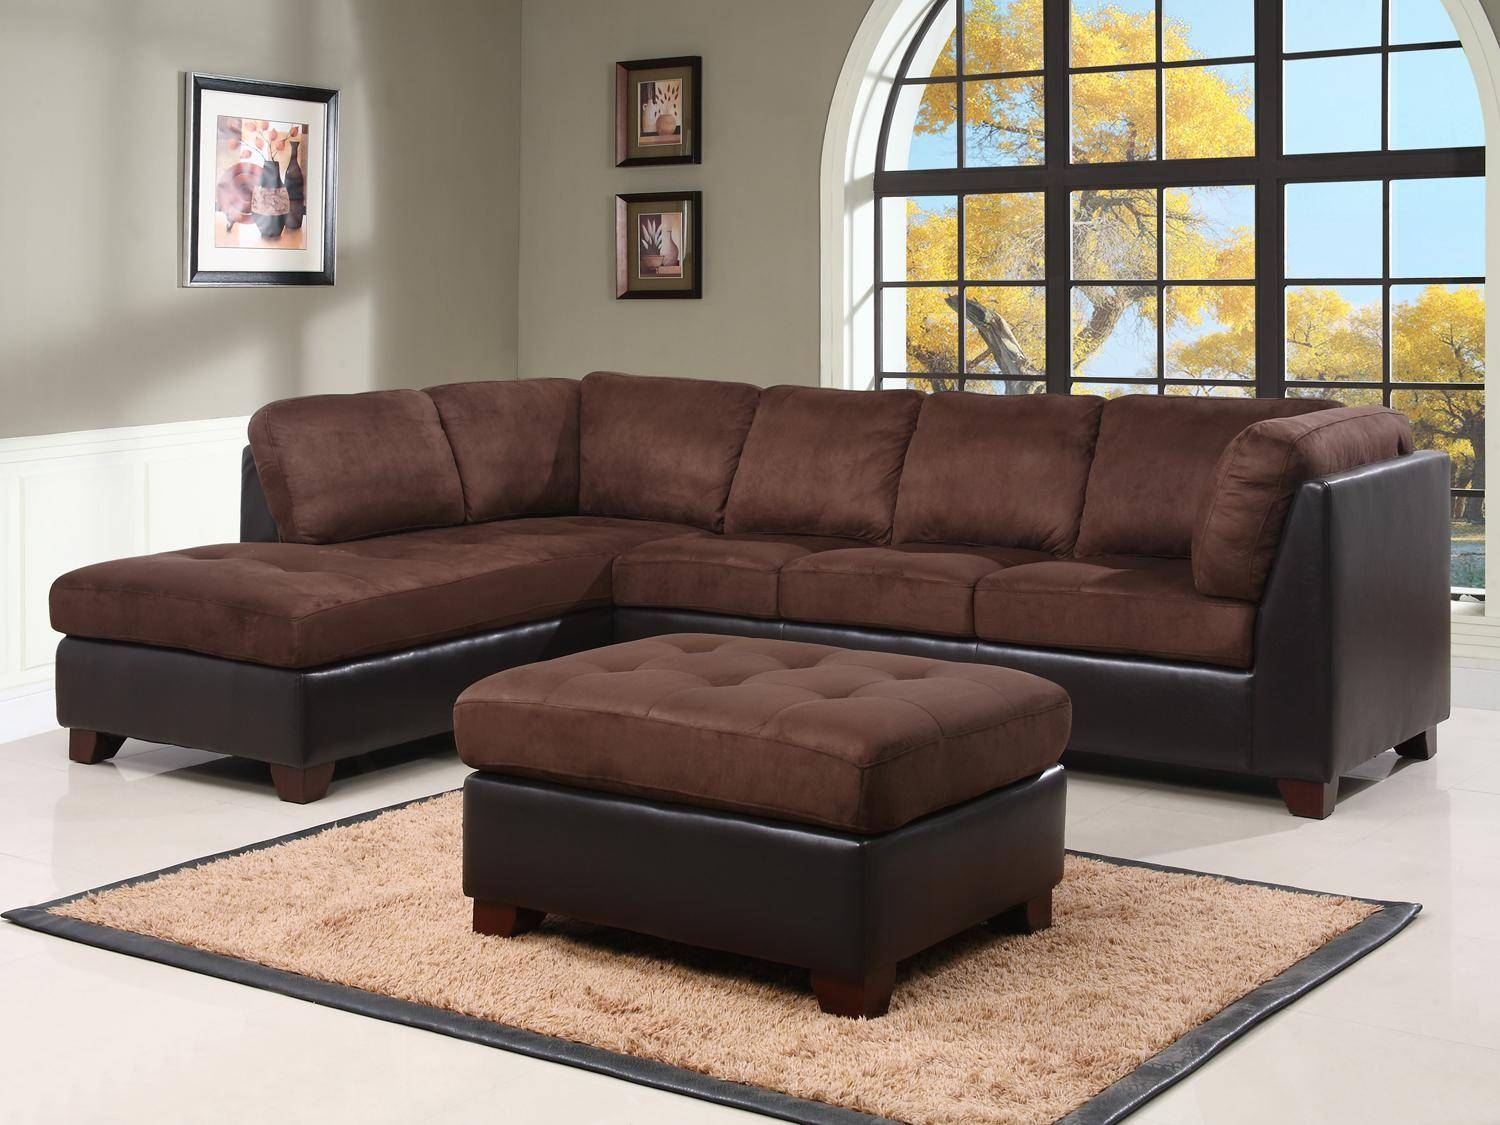 Top Sofa And Ottoman With Image 9 Of 15 | Carehouse for Abbyson Living Charlotte Dark Brown Sectional Sofa and Ottoman (Image 27 of 30)